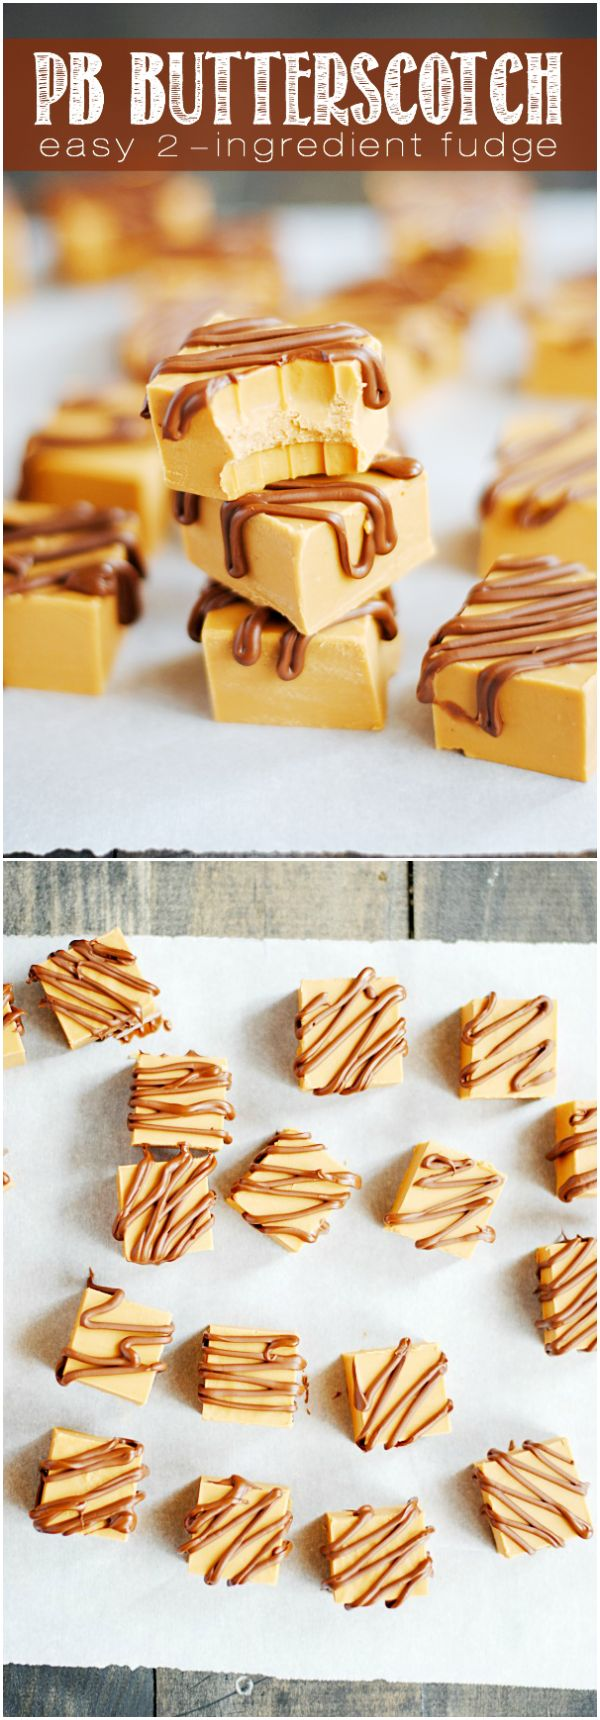 Easy 2-Ingredient Peanut Butter Butterscotch Fudge is simply incredible and SO EASY to make!